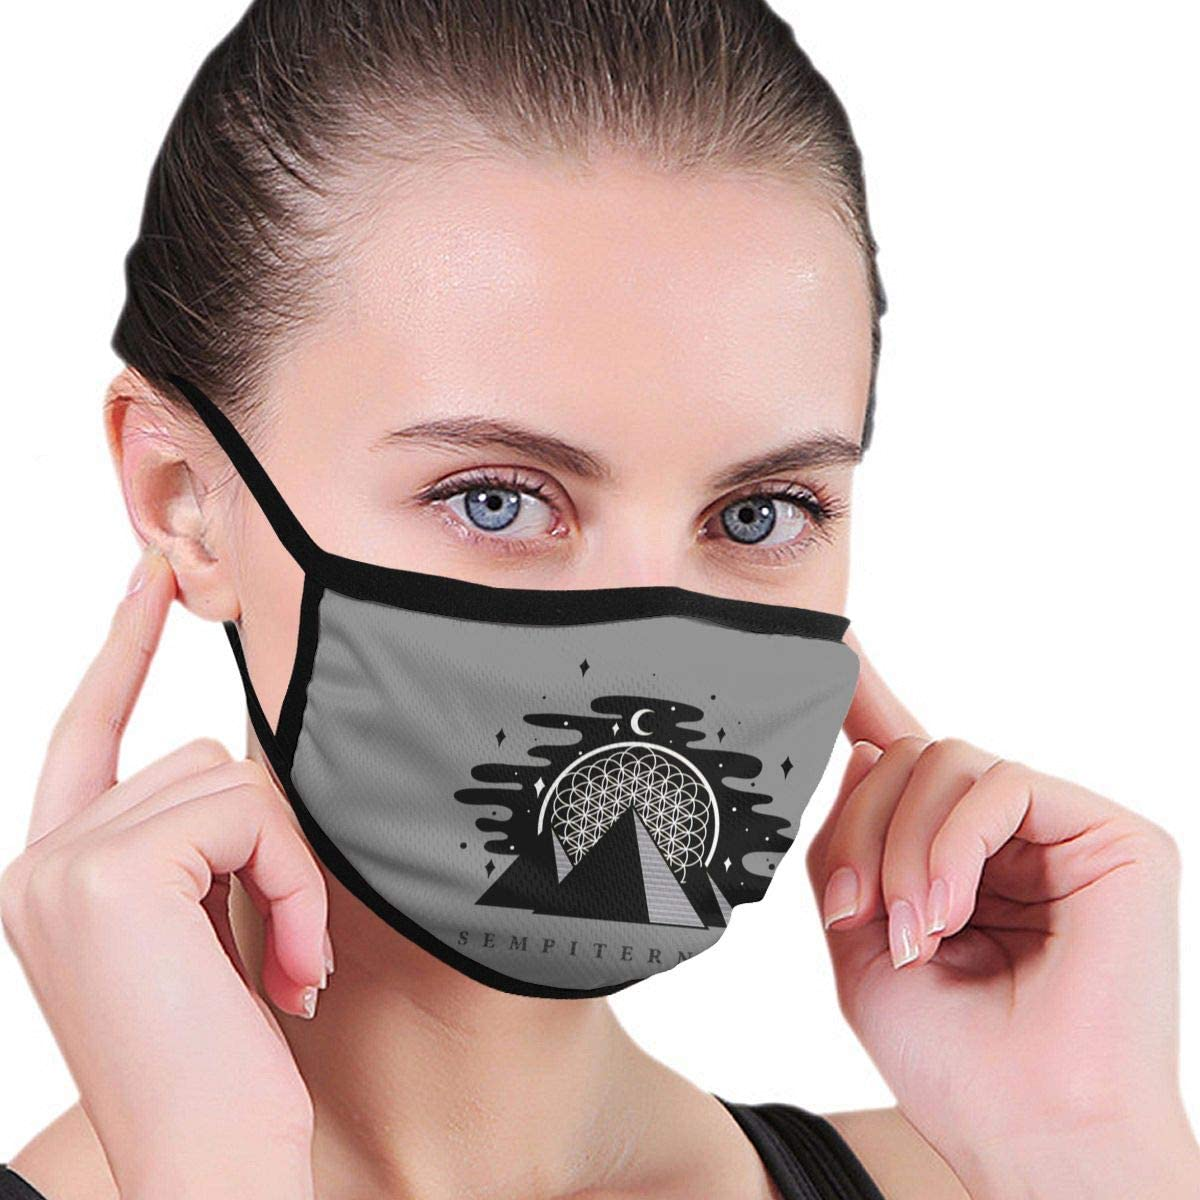 Zhengyu Bring Me The Horizon Face Mouth Protect Comfy Breathable Safety Air Fog Outdoor Fashion Half Face Face Protections - for Man and Woman